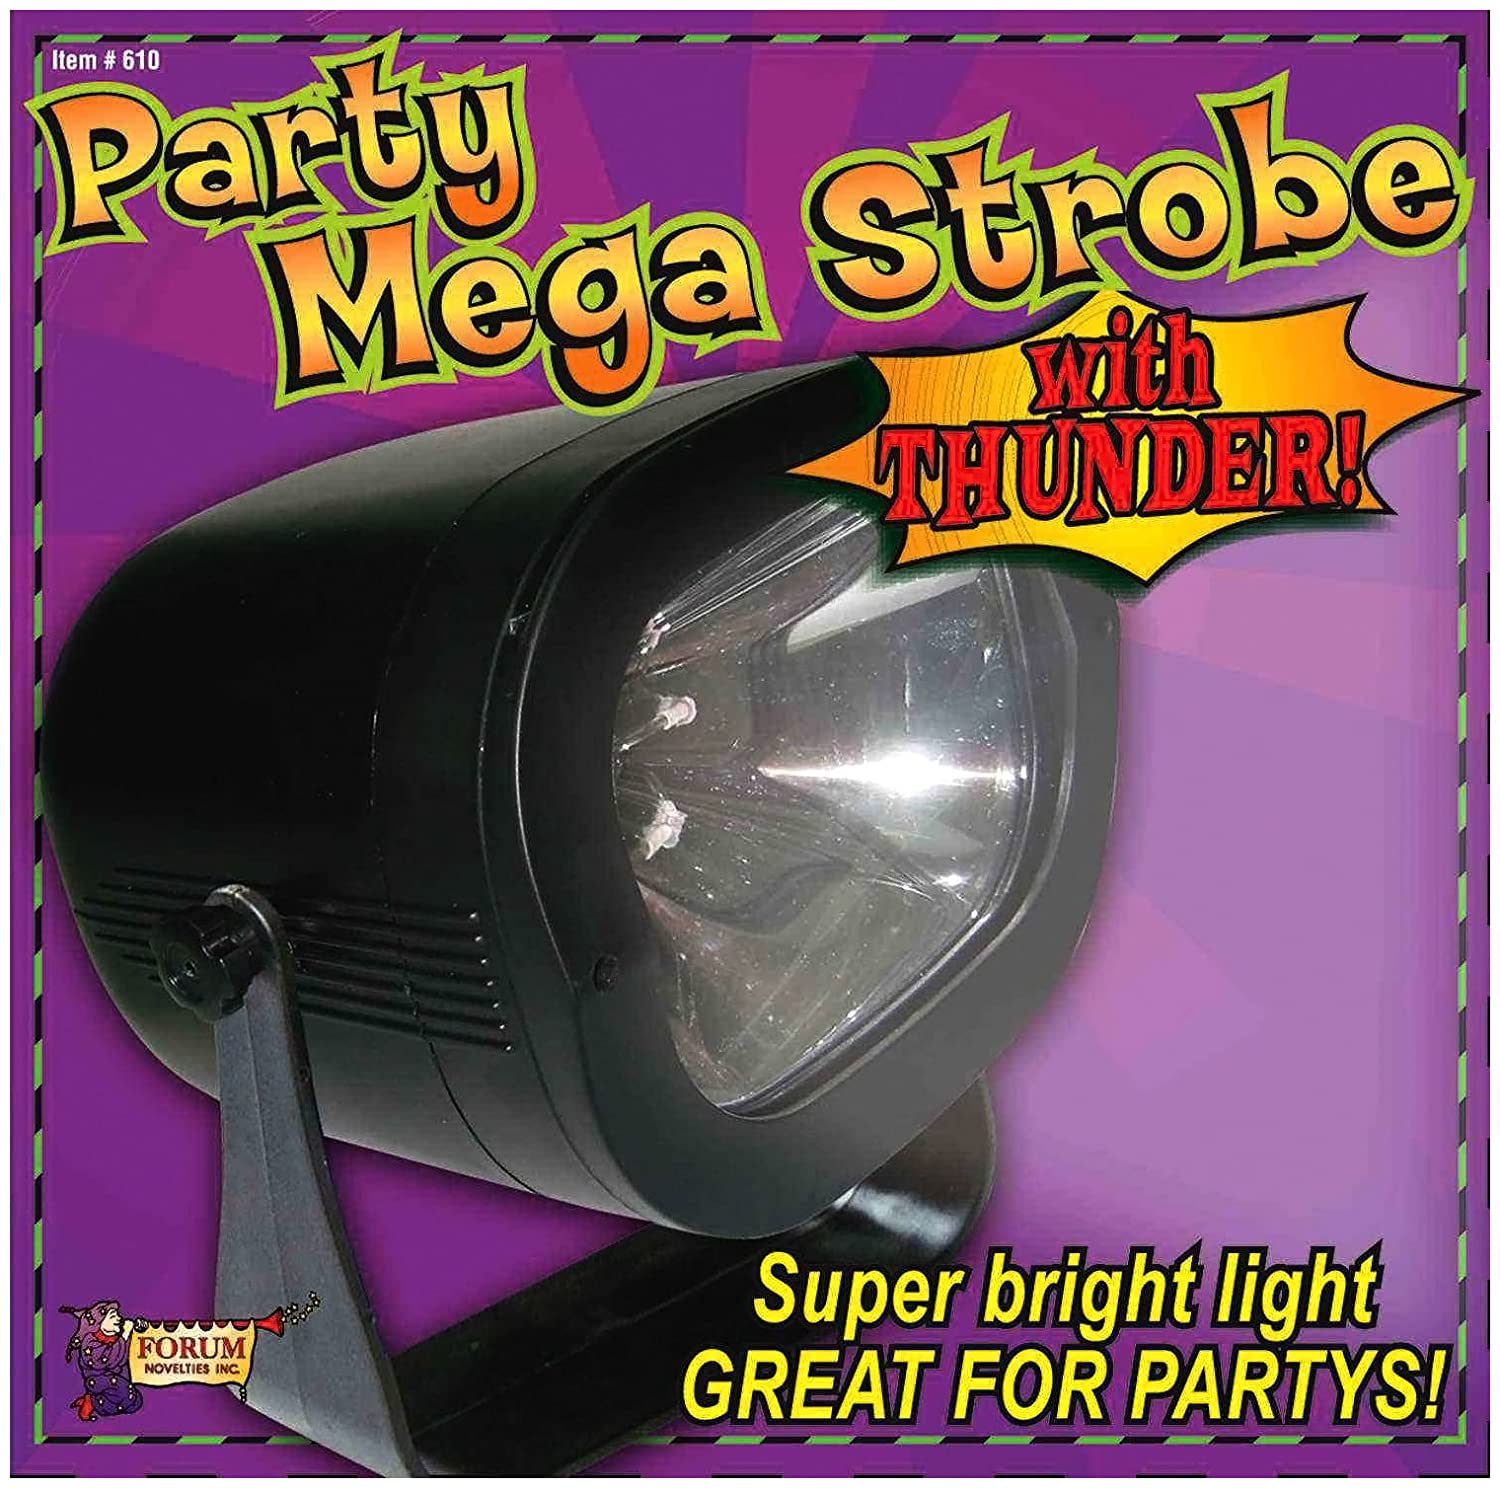 amazoncom forum novelties mega strobe super bright party light with thunder sound effects toys u0026 games